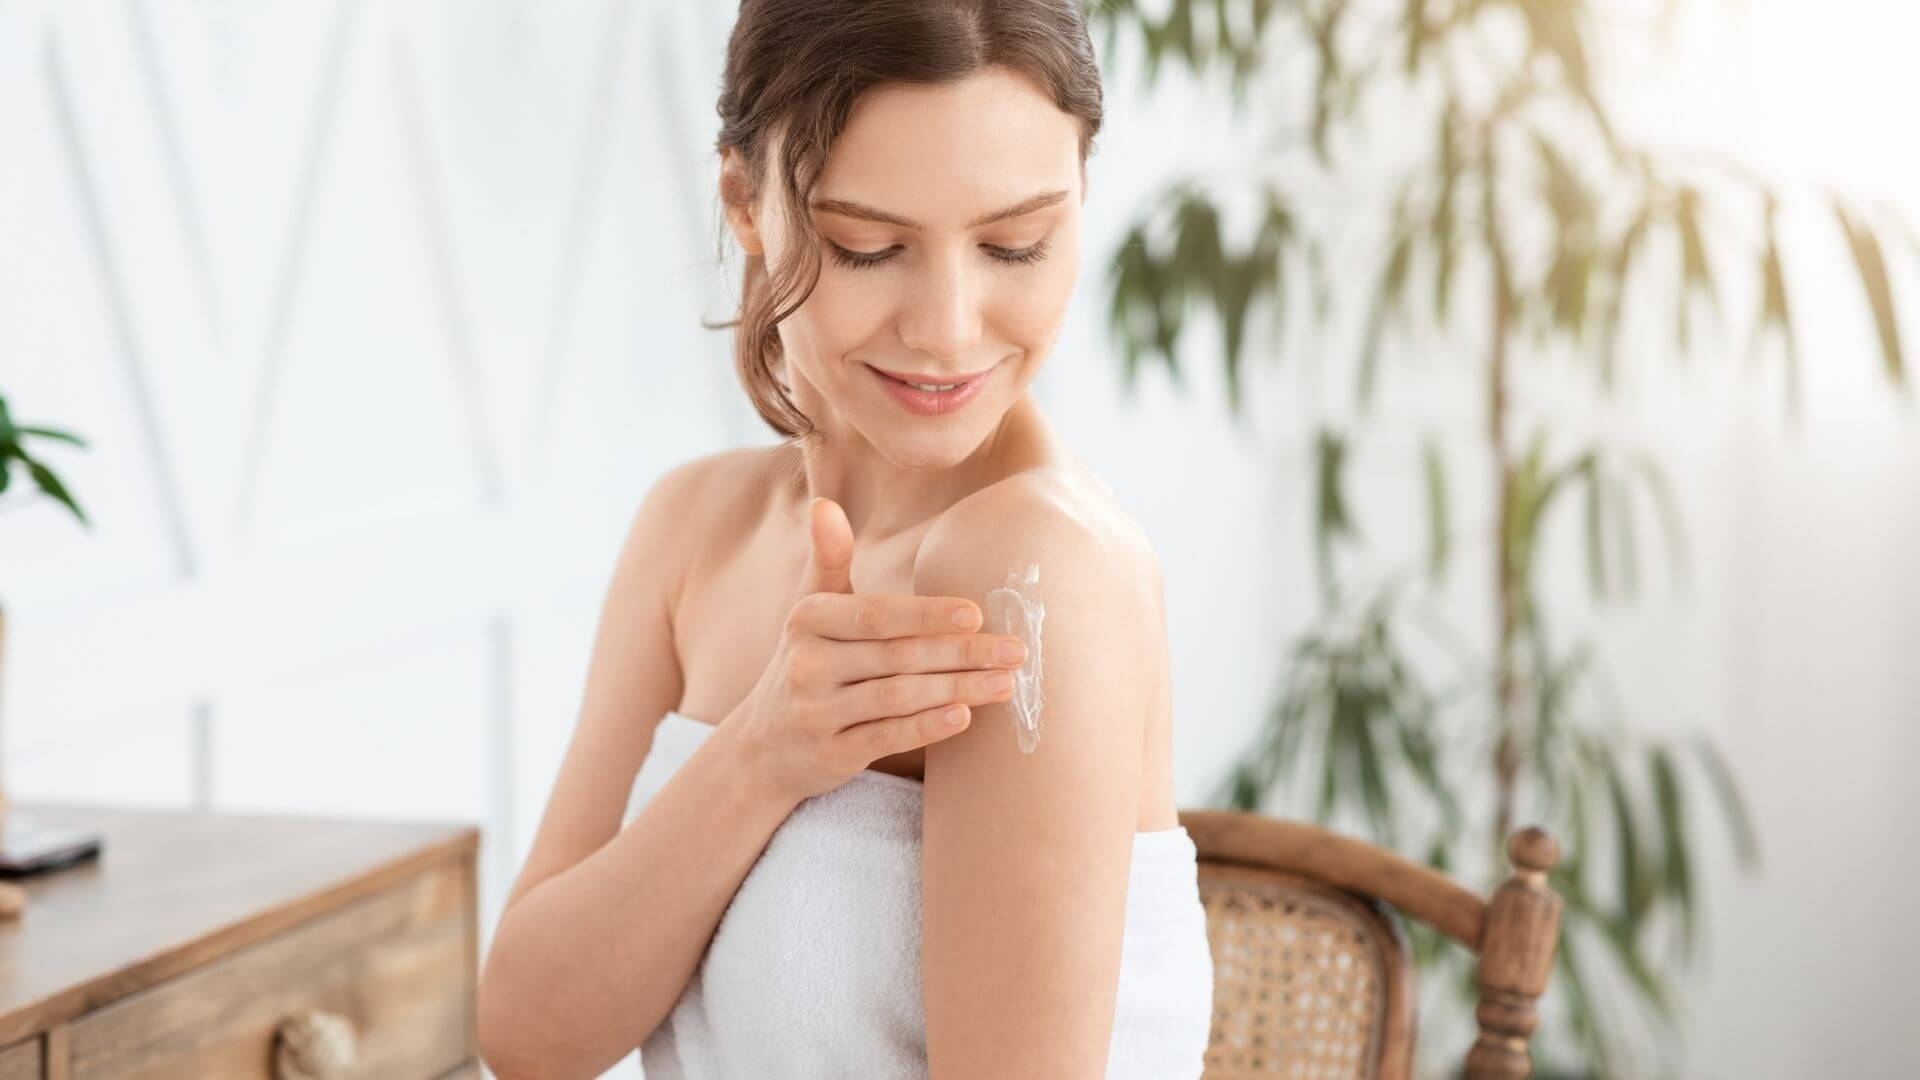 Woman in towel rubbing CBD Topical on her arm.